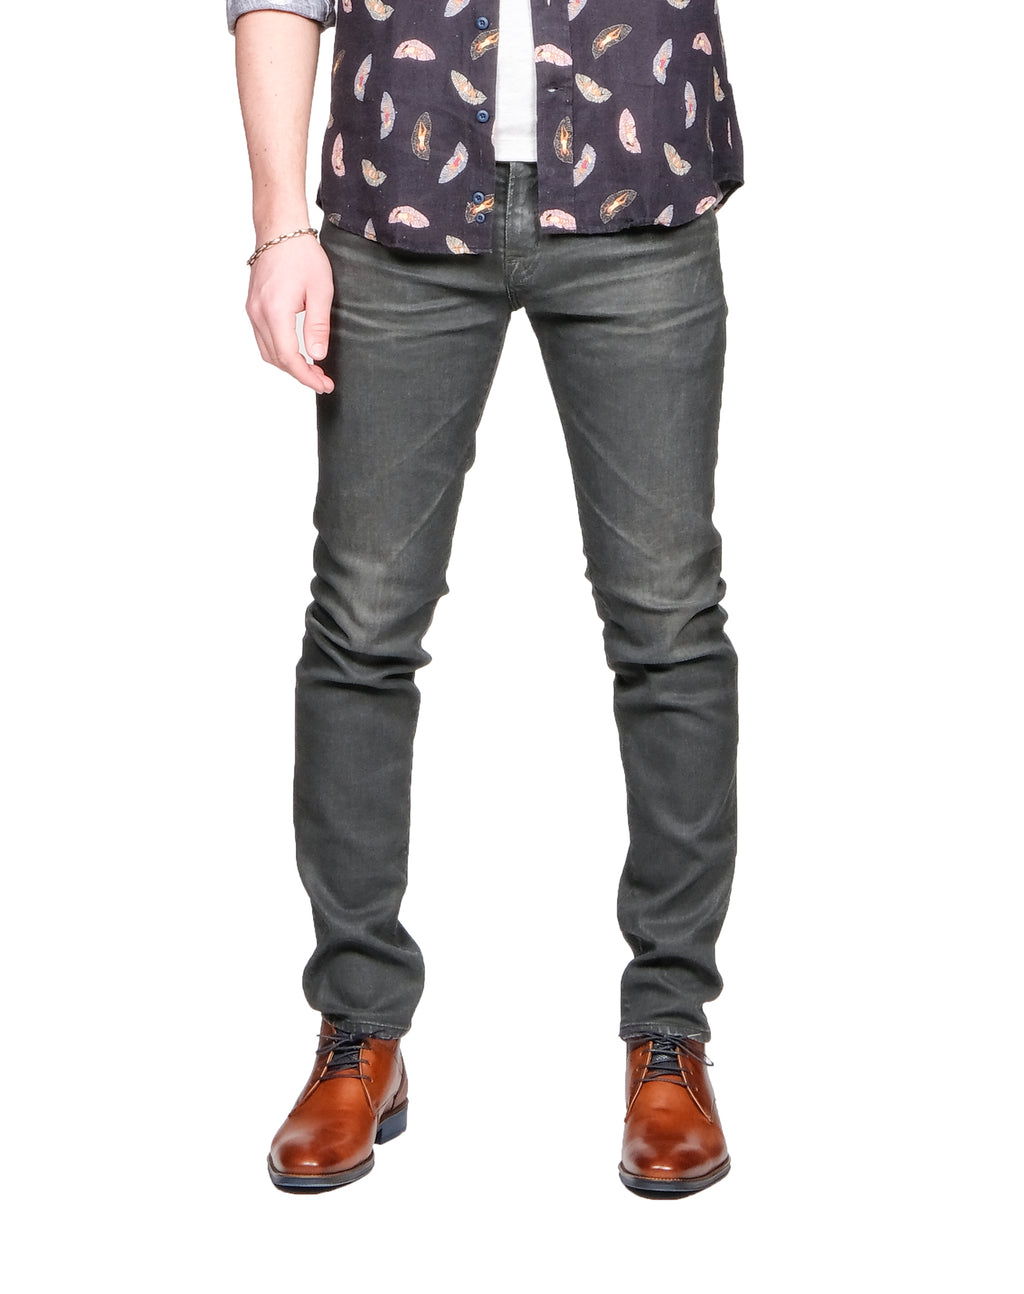 Dylan Skinny Fit Jeans (3 Years Merit) - Mr. Derk Apparel Ltd.